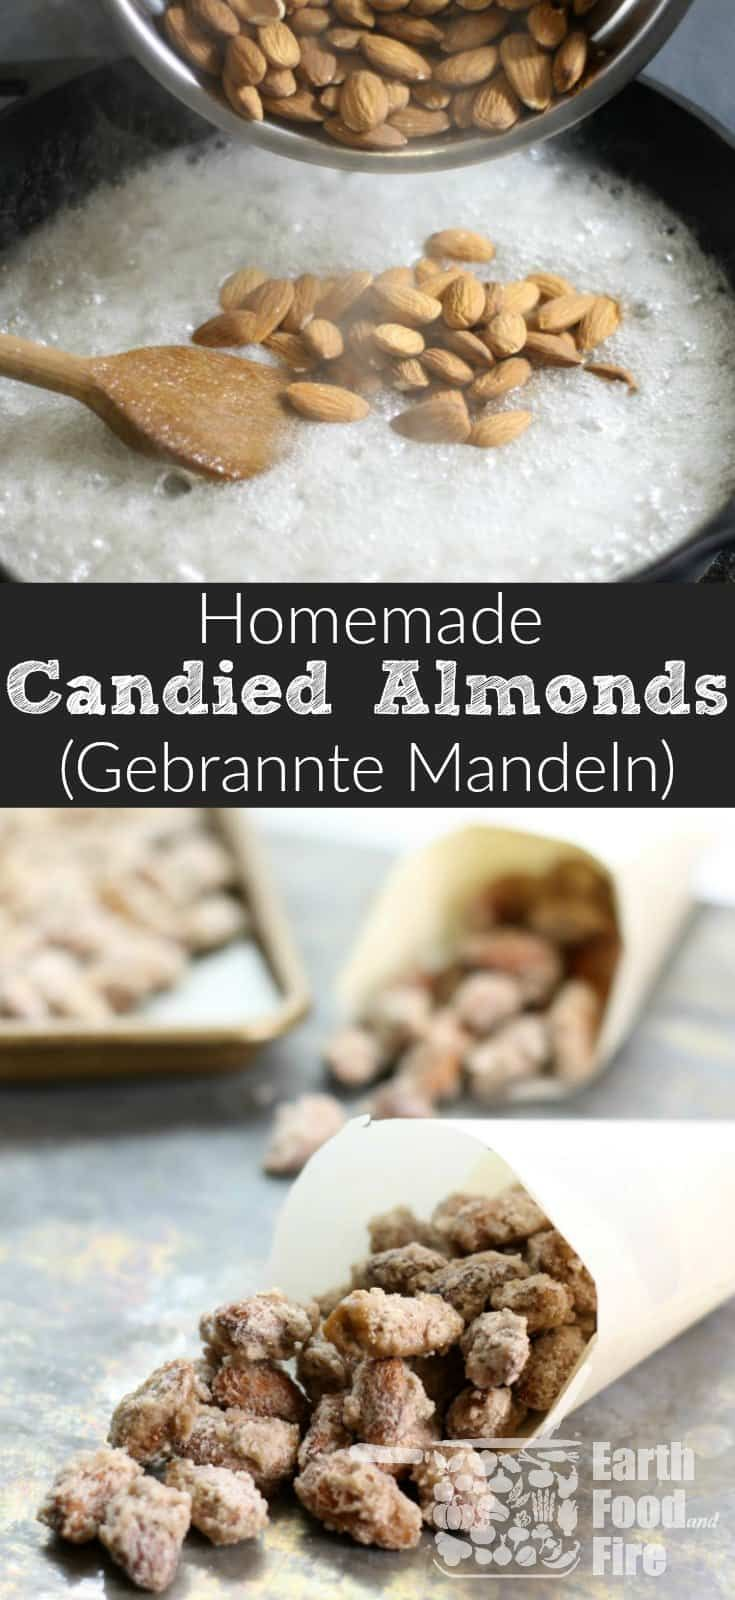 A delicious treat especially during the holiday season, candied almonds,('gebrannte mandeln' in German) are easy to make at home with only a handful of ingredients. Kids and adults a like will love these sweet roasted nuts! Gluten Free and Dairy Free to boot! #almonds #snack #candied #nuts #christmas #glutenfree #treat #gebrannte #mandeln via @earthfoodandfire